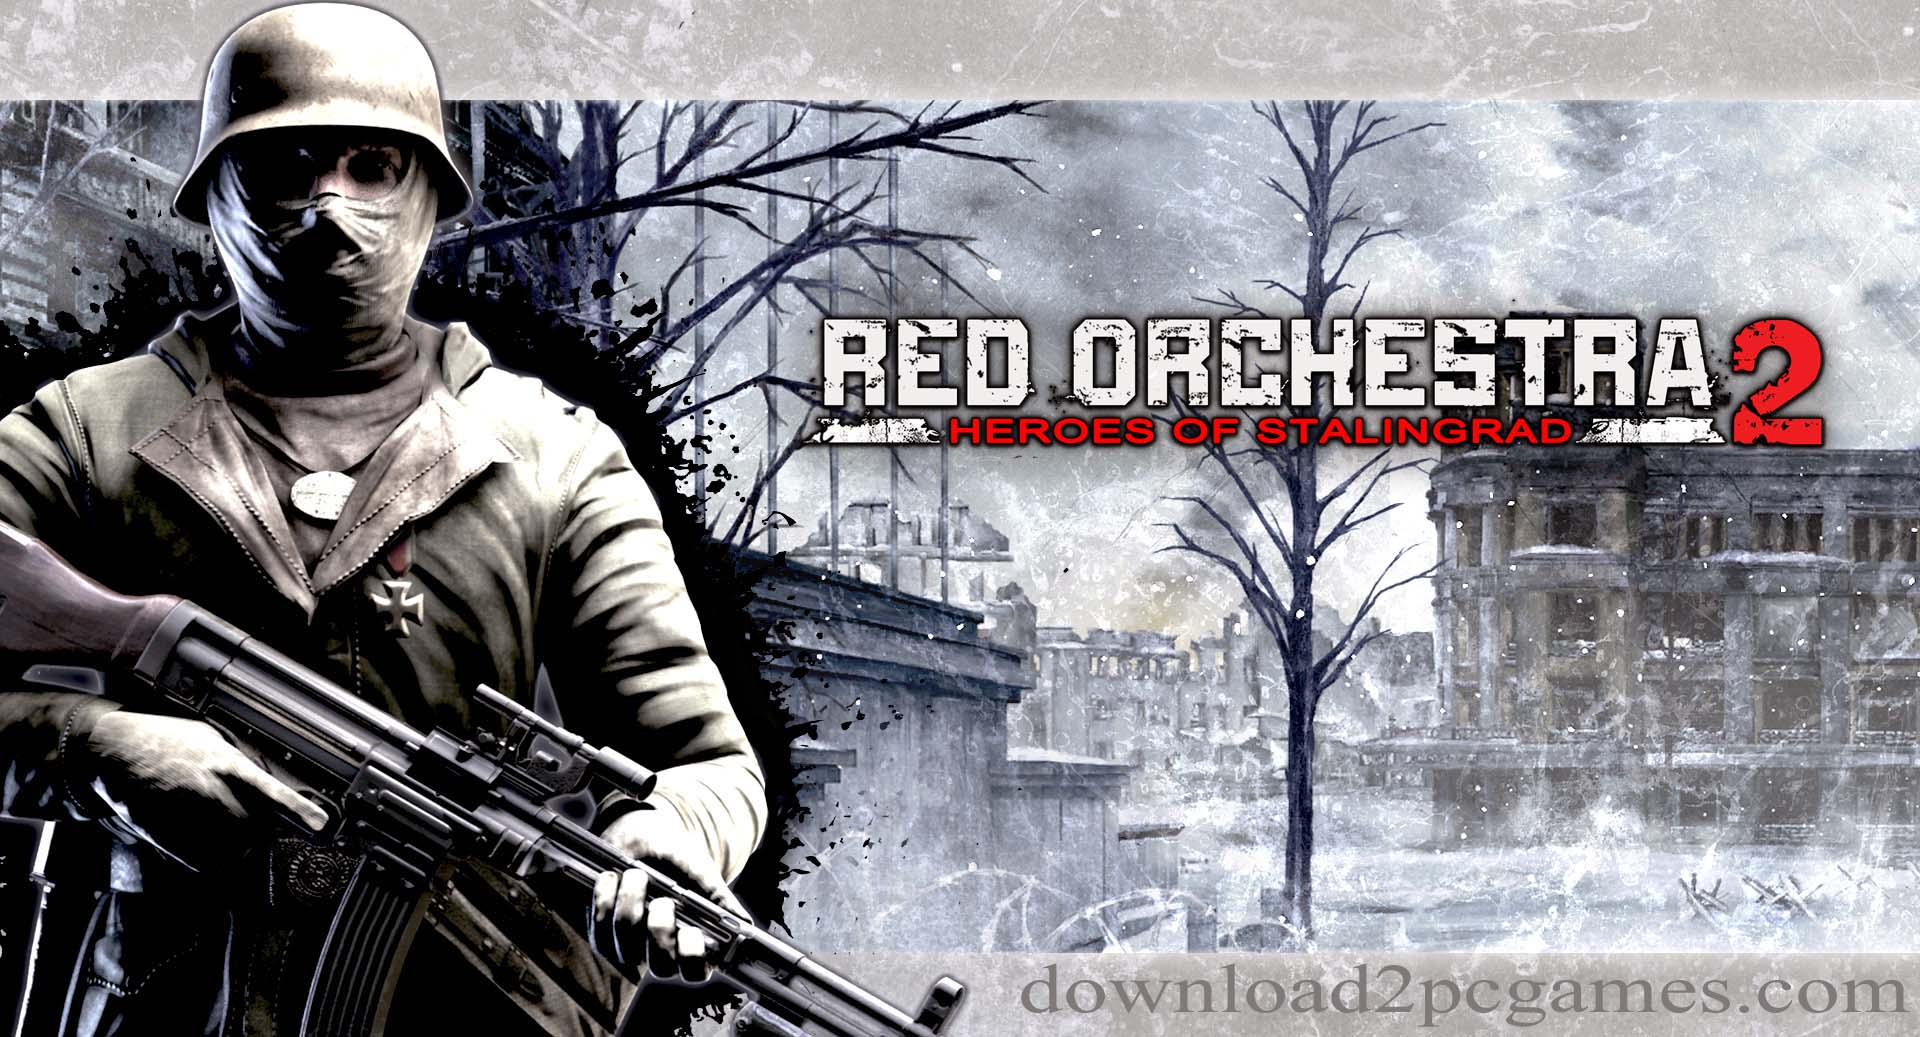 Red Orchestra 2: Heroes of Stalingrad PC Game Free Download Full - Repack